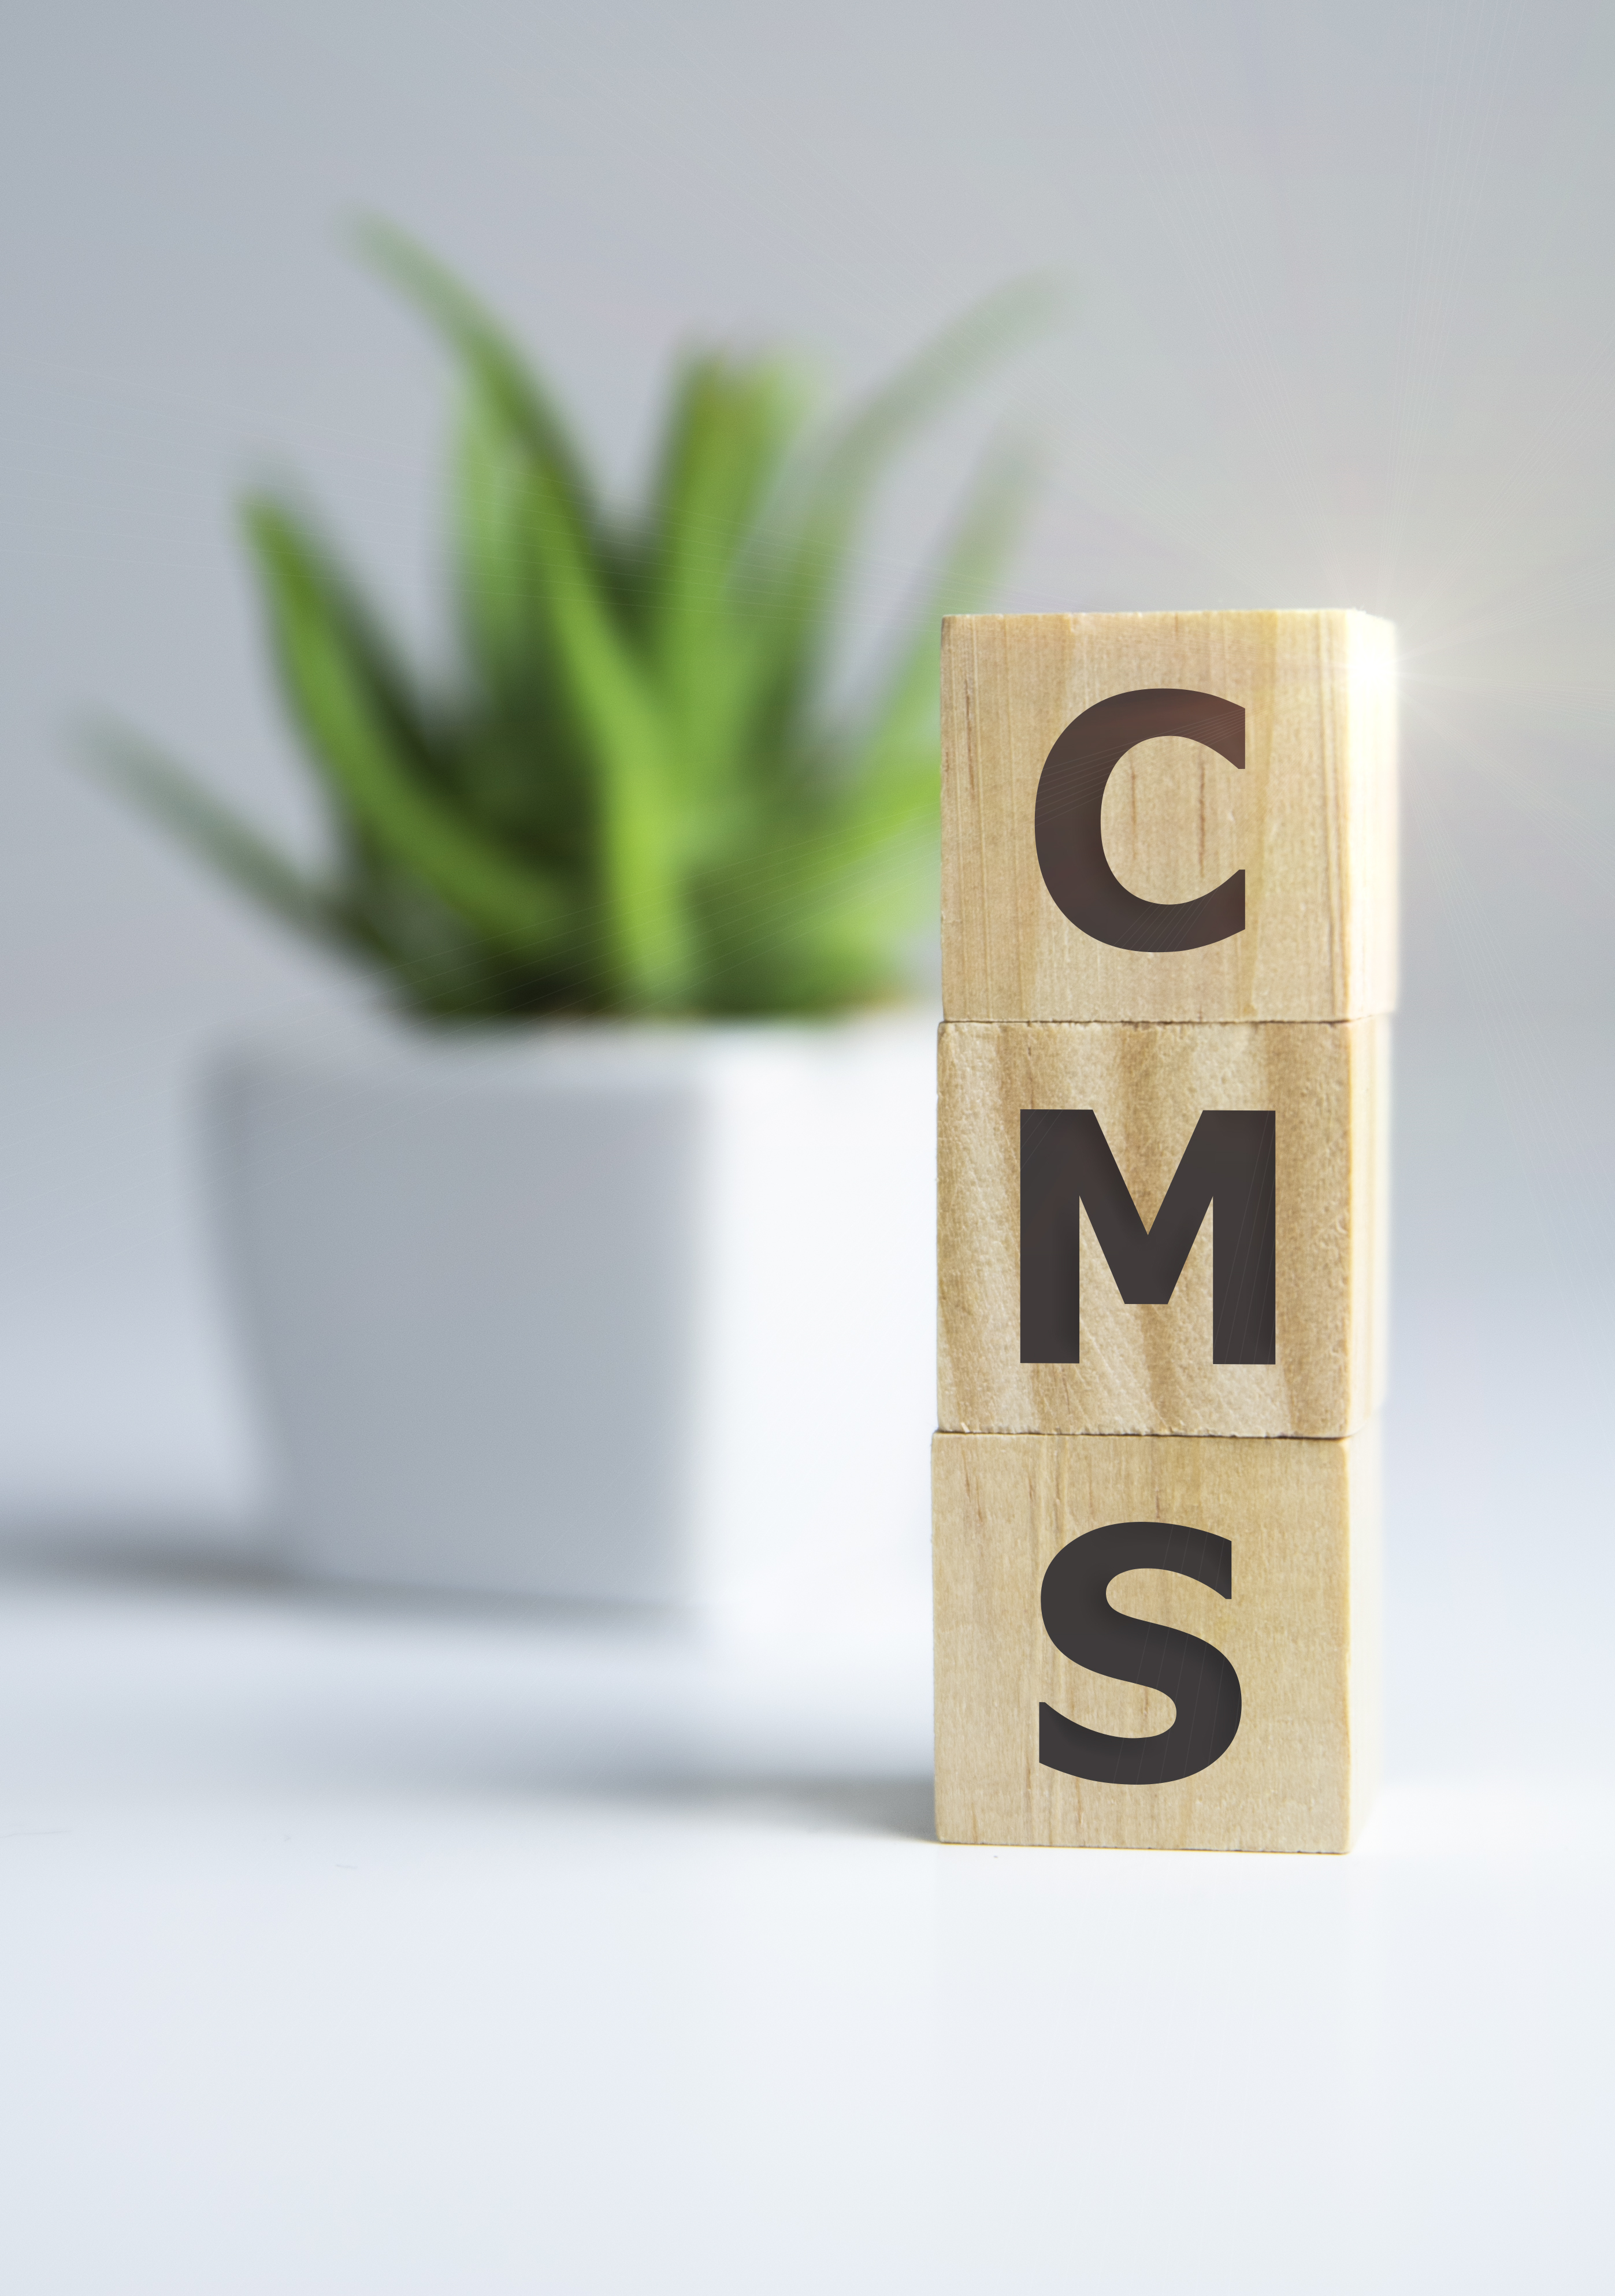 CMS Specialist-Wanted